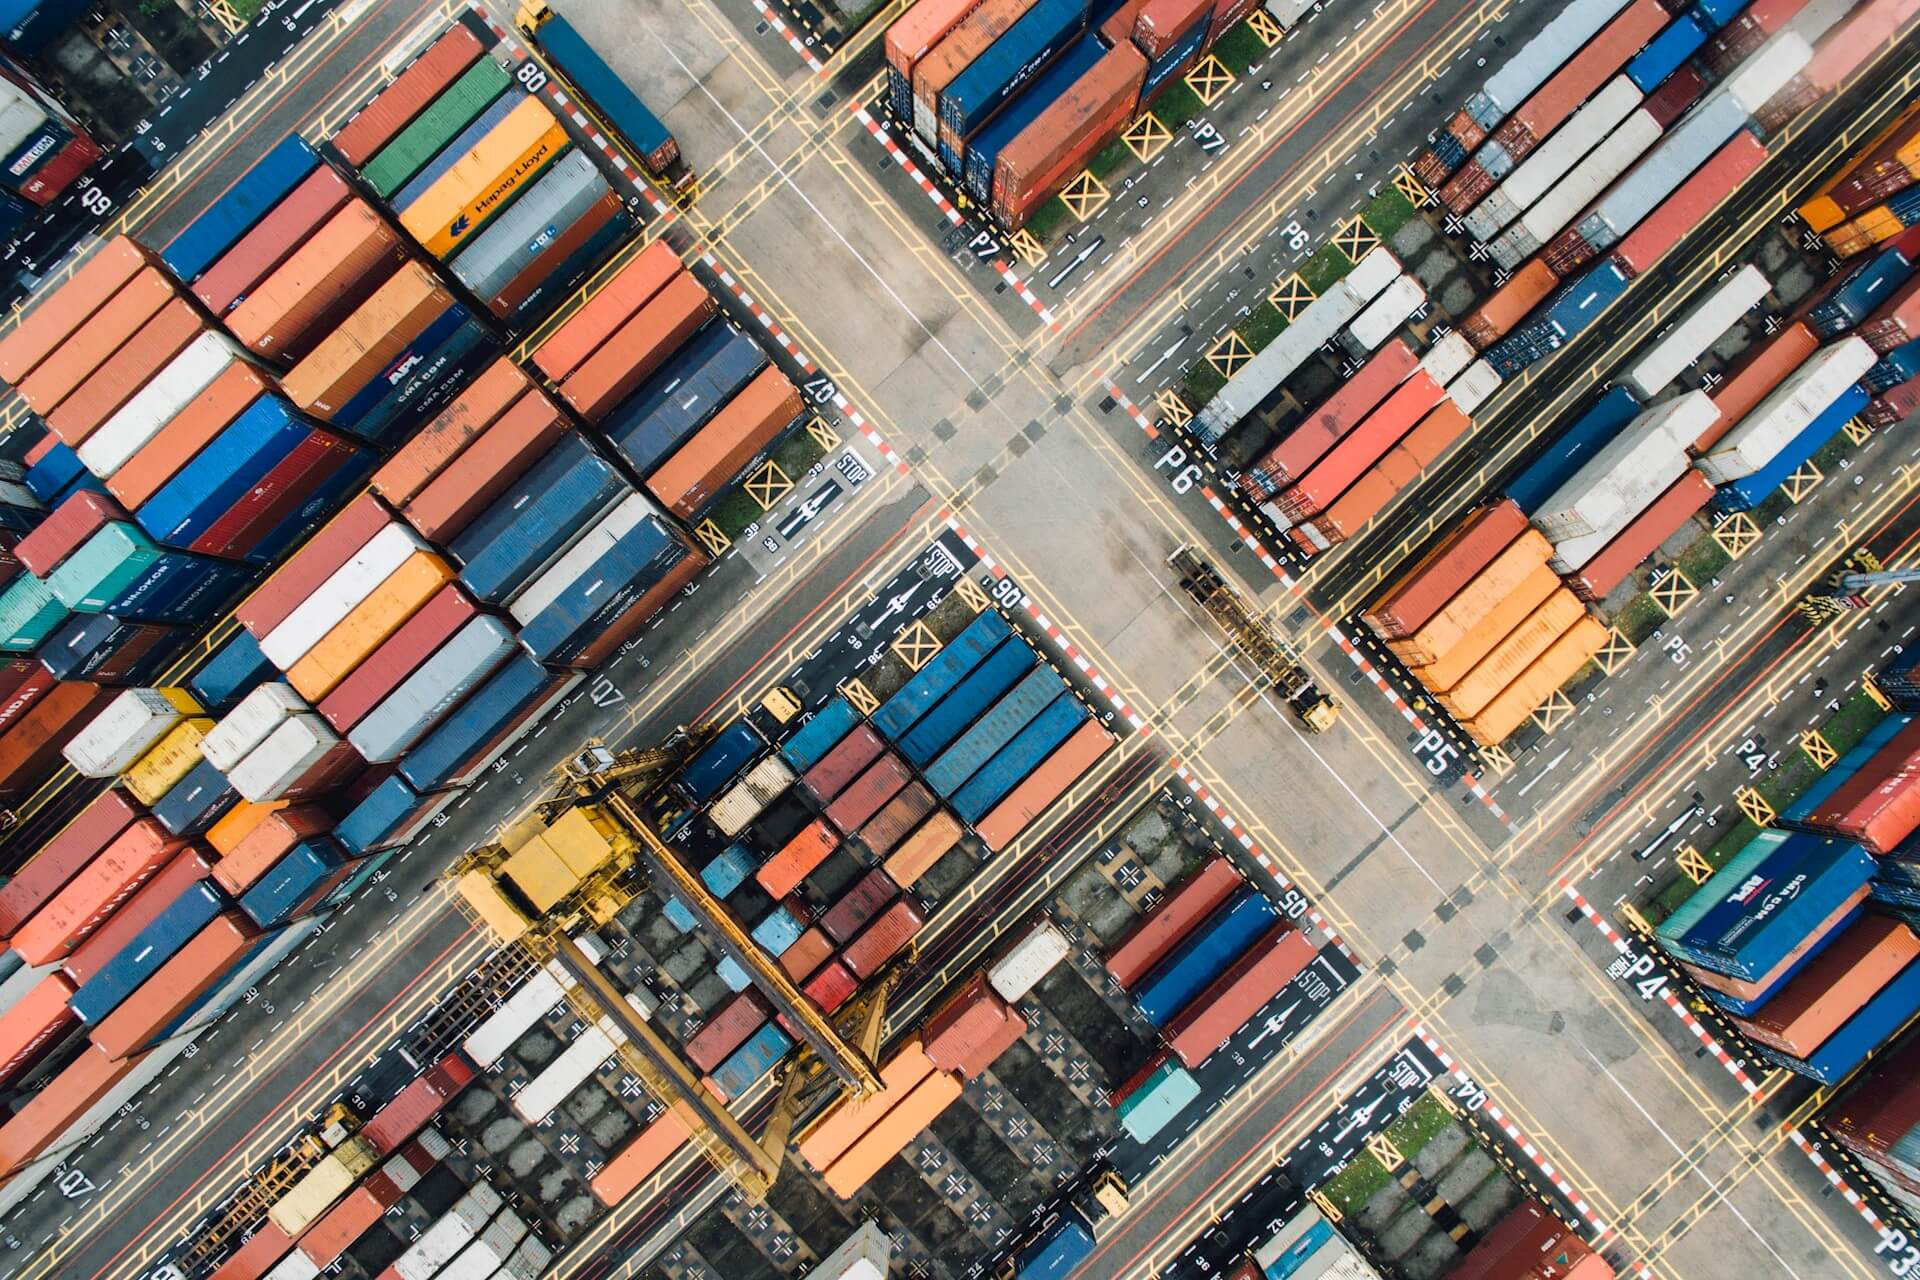 Aerial shot of shipping containers in port